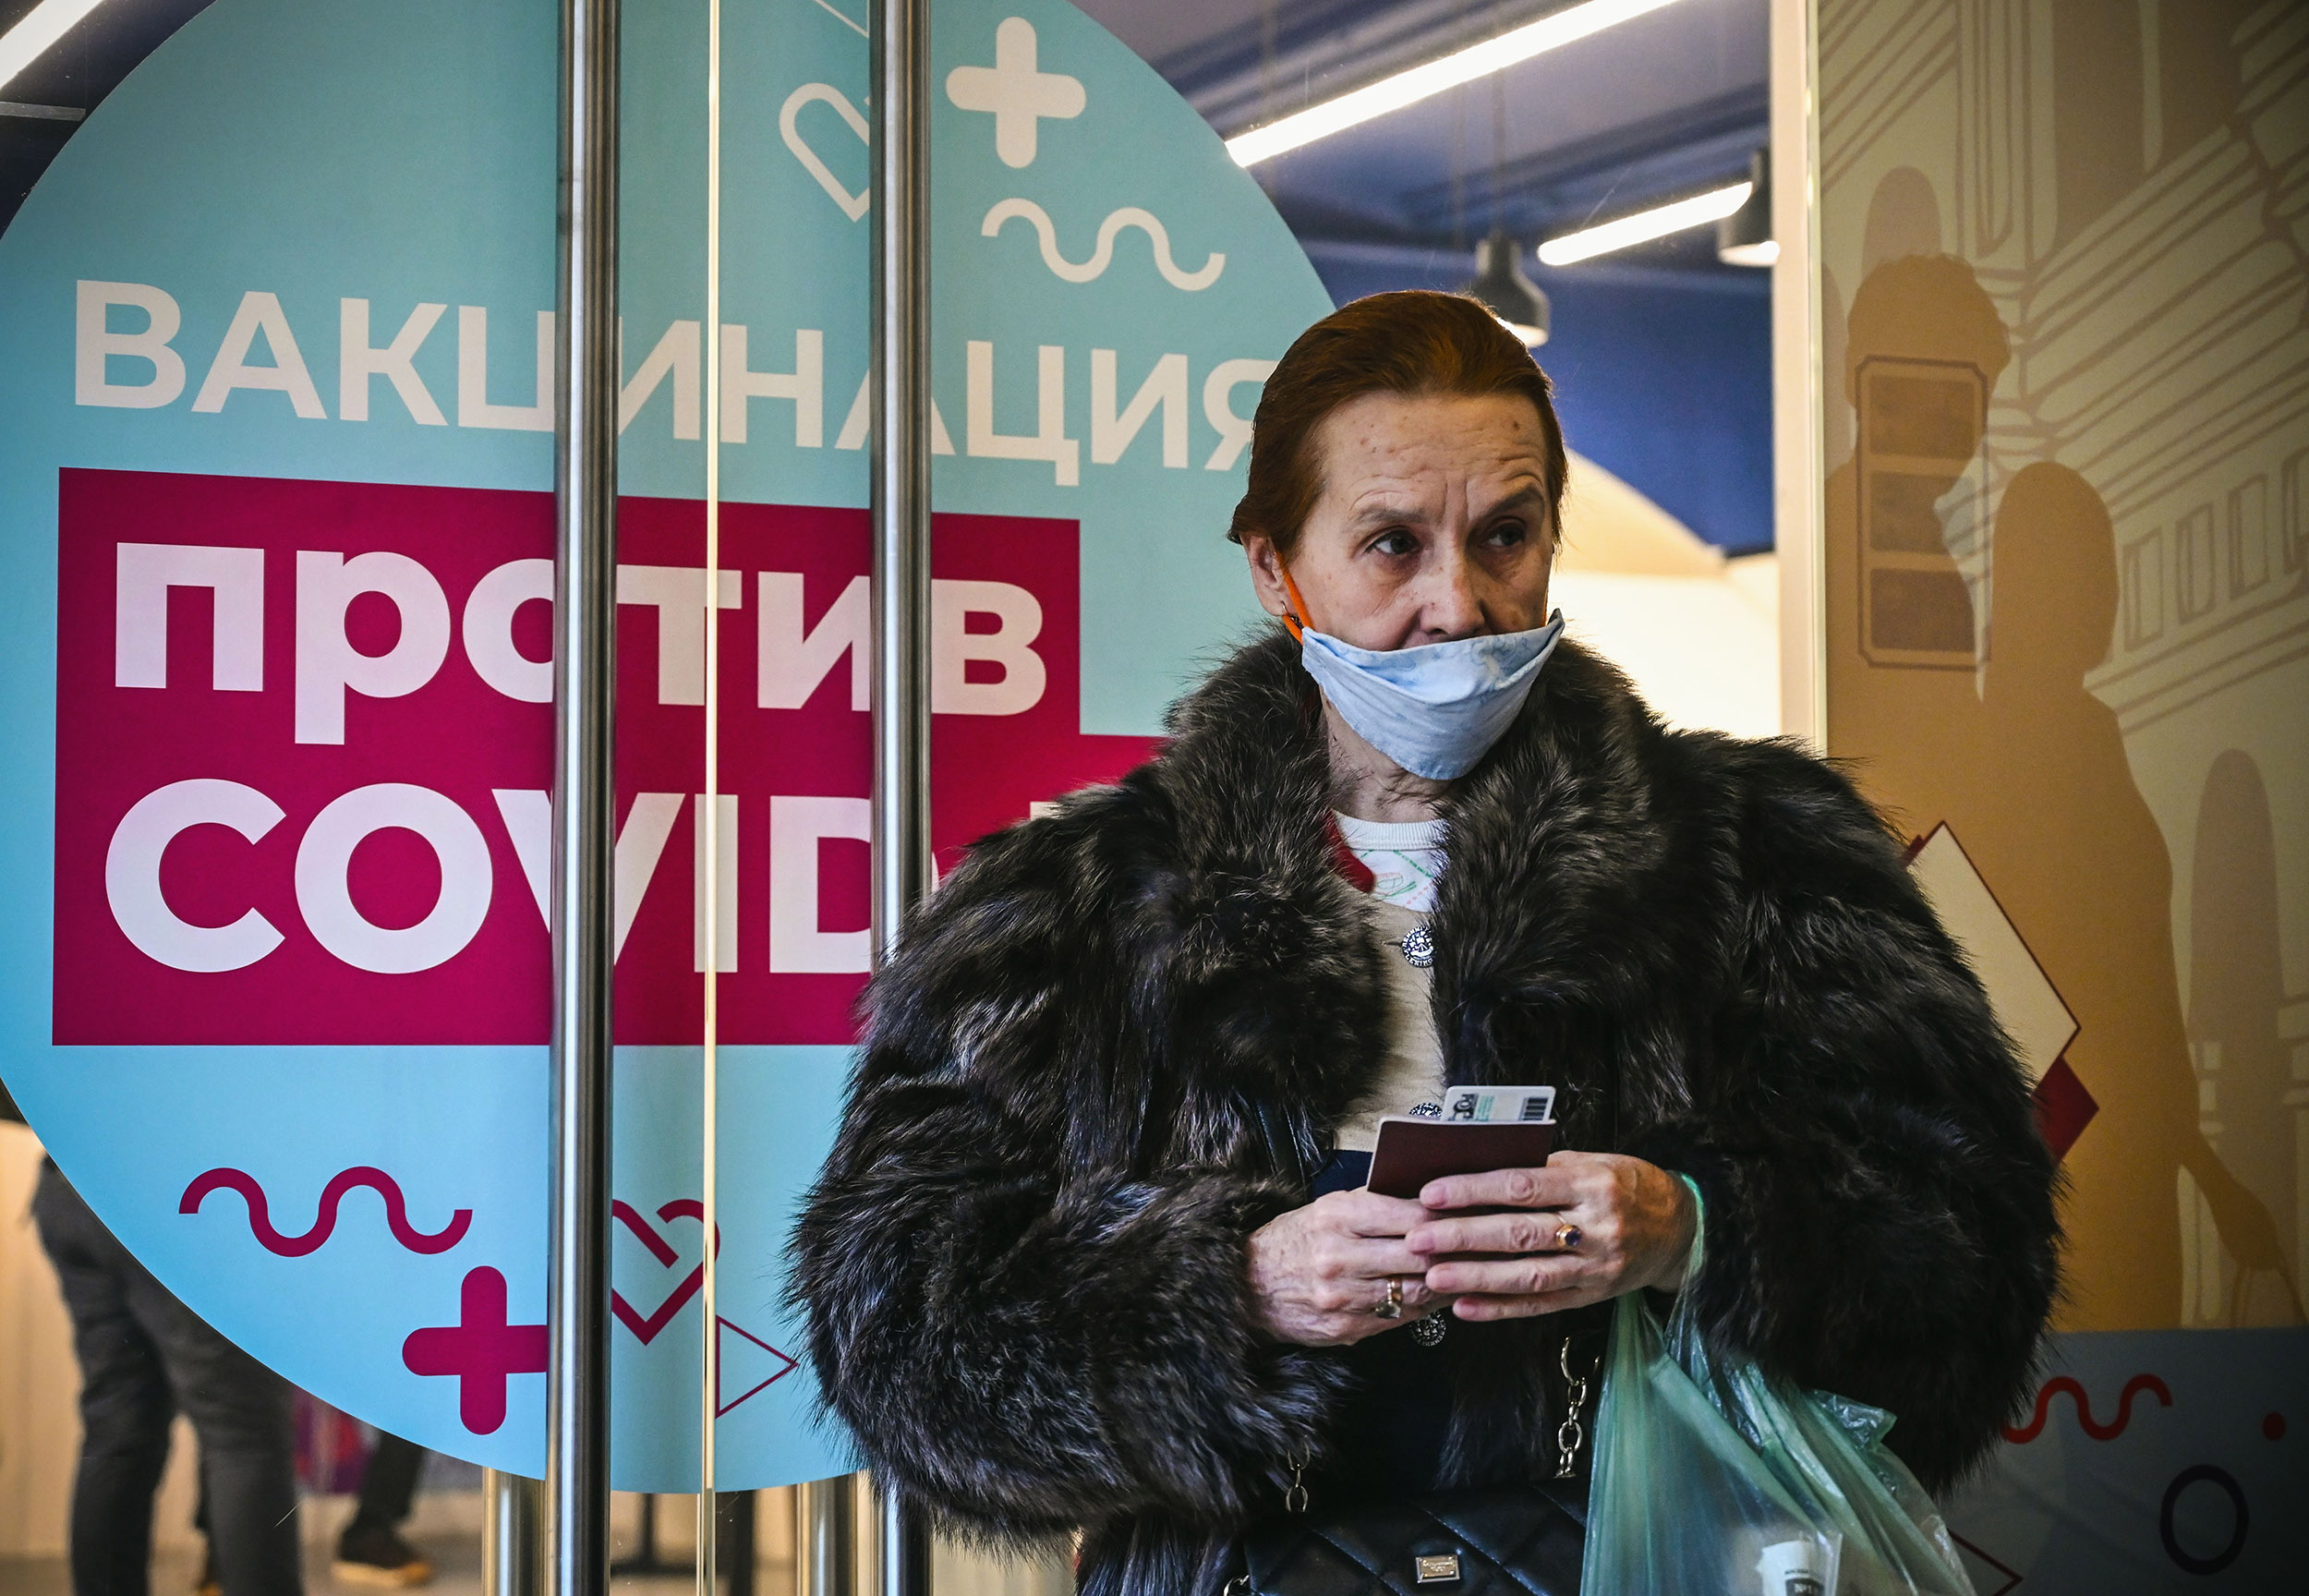 Russia registered the first Covid vaccine. Now it's struggling to vaccinate its population.